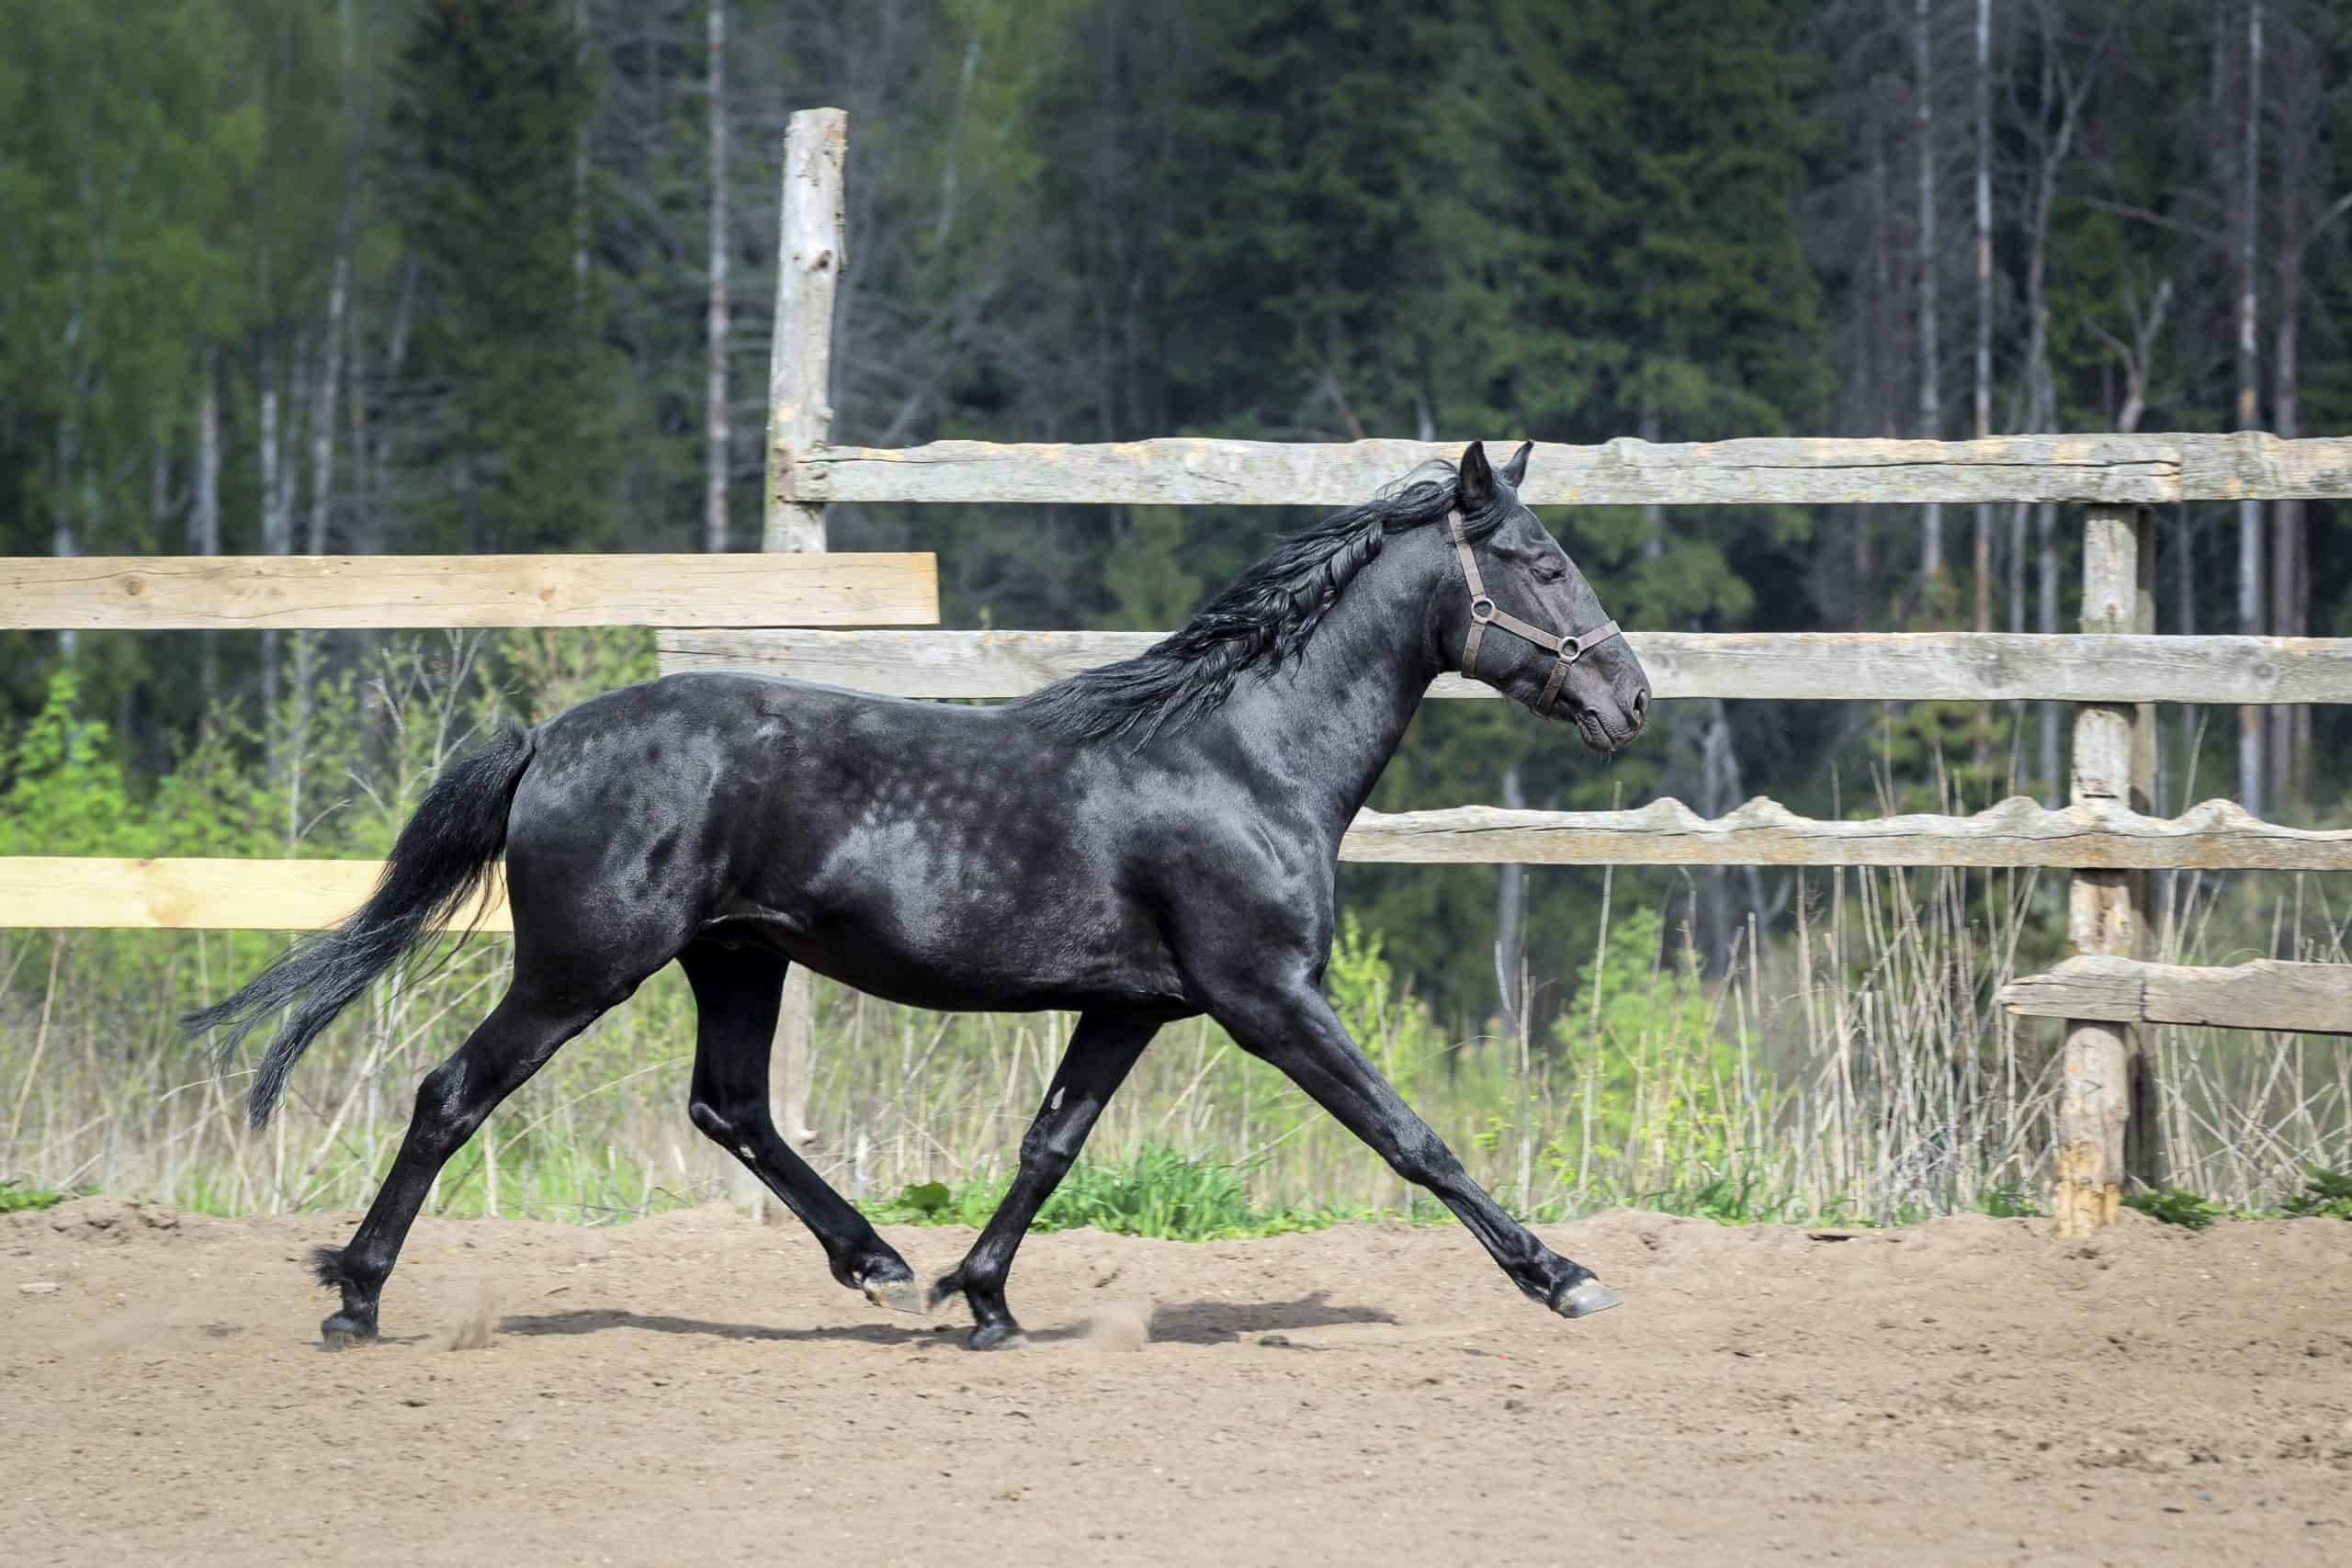 Black horse trotting in the paddock